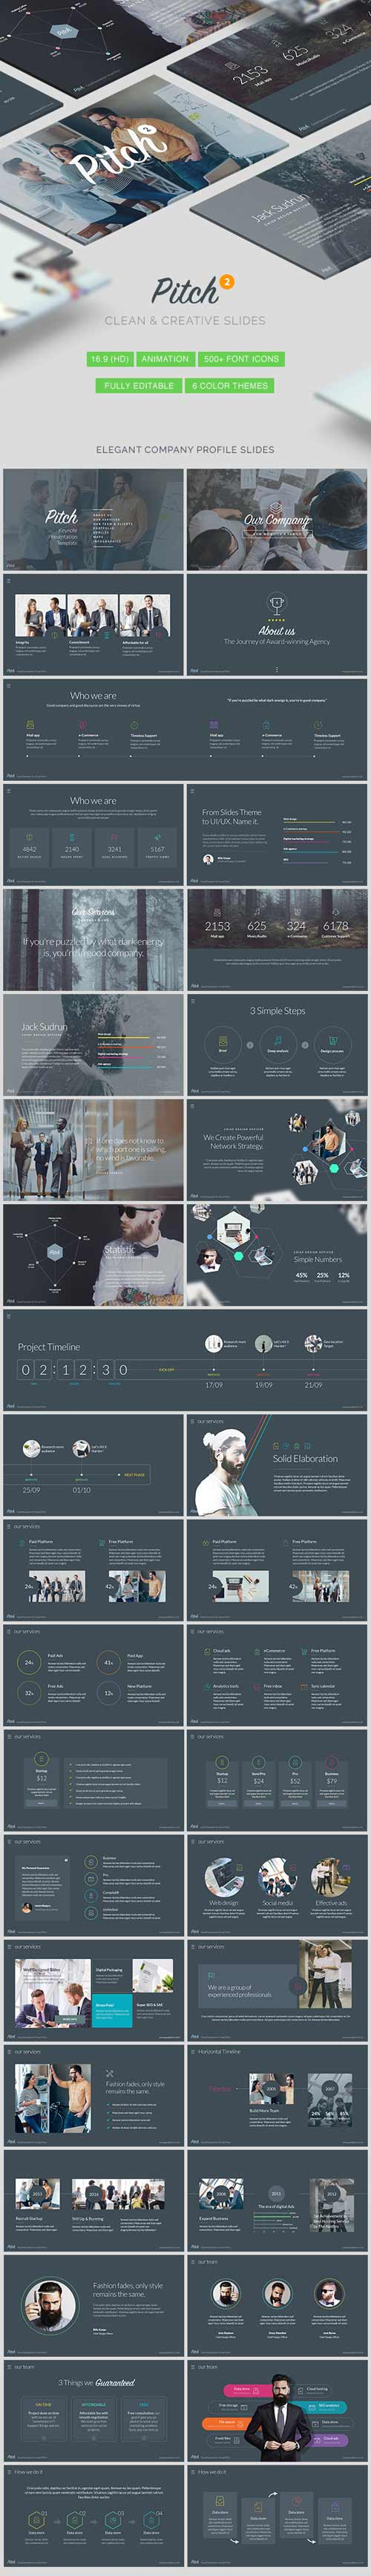 Pitch 2 - Clean & Modern Keynote Template 16072556